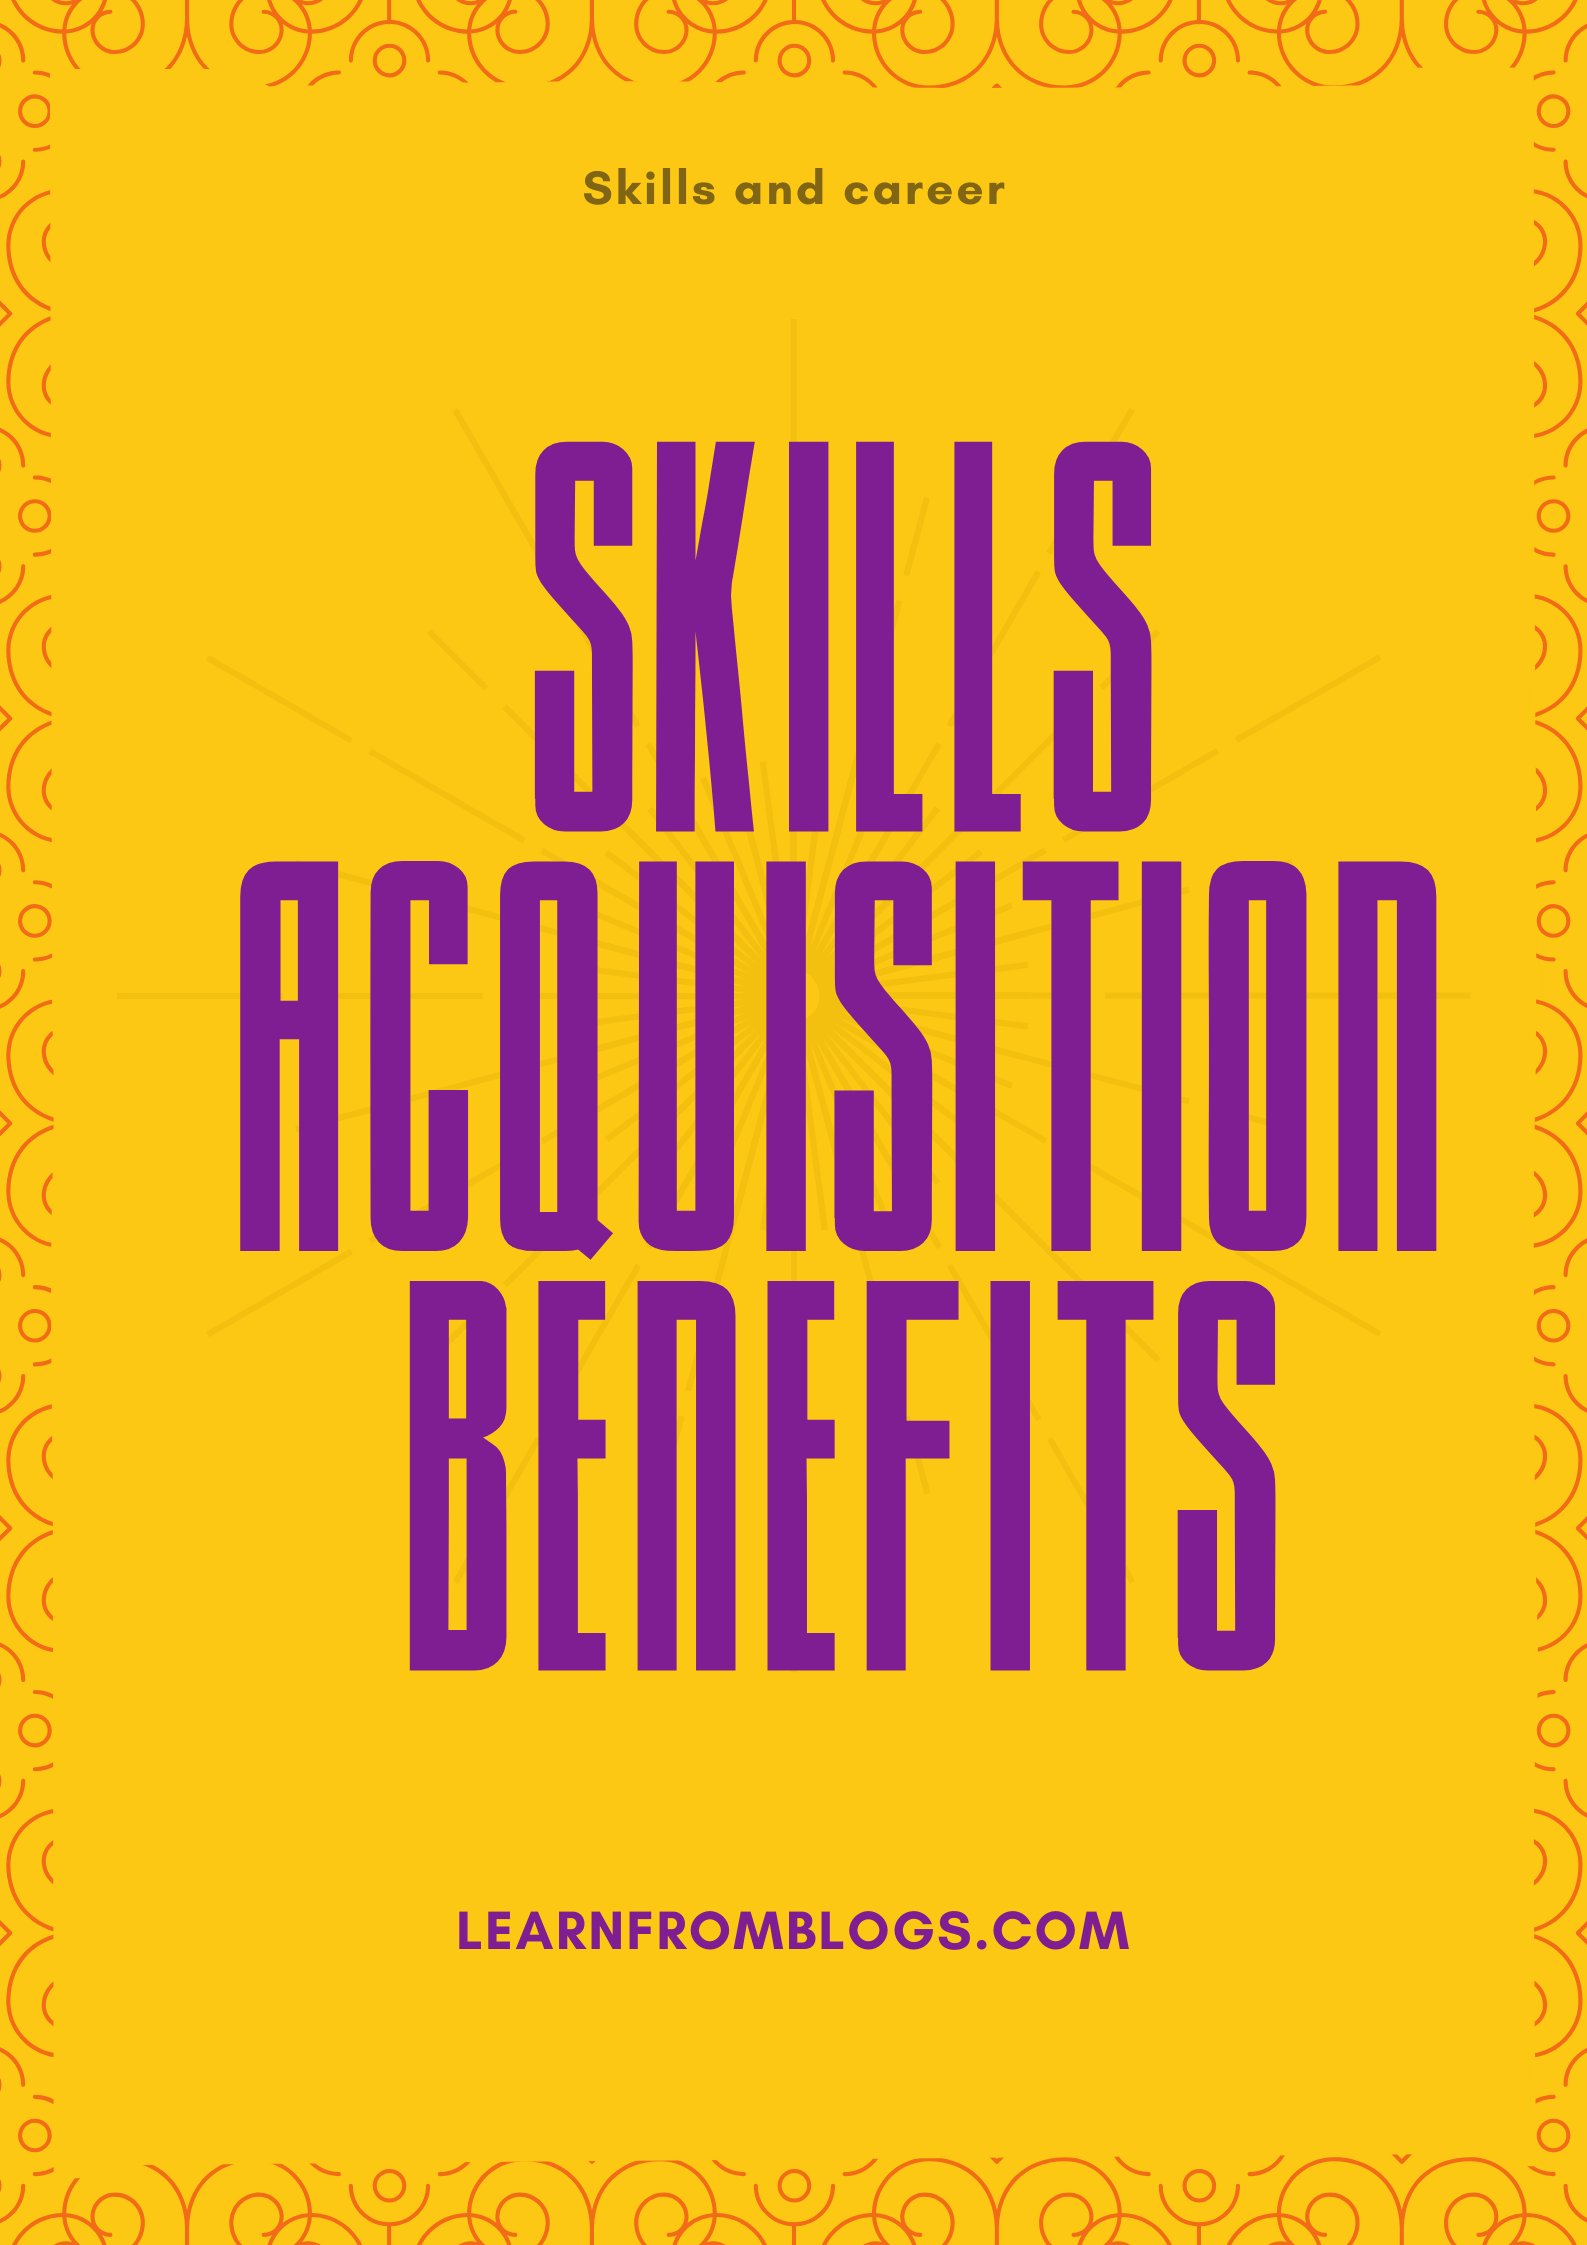 Skills acquistion benefits.png